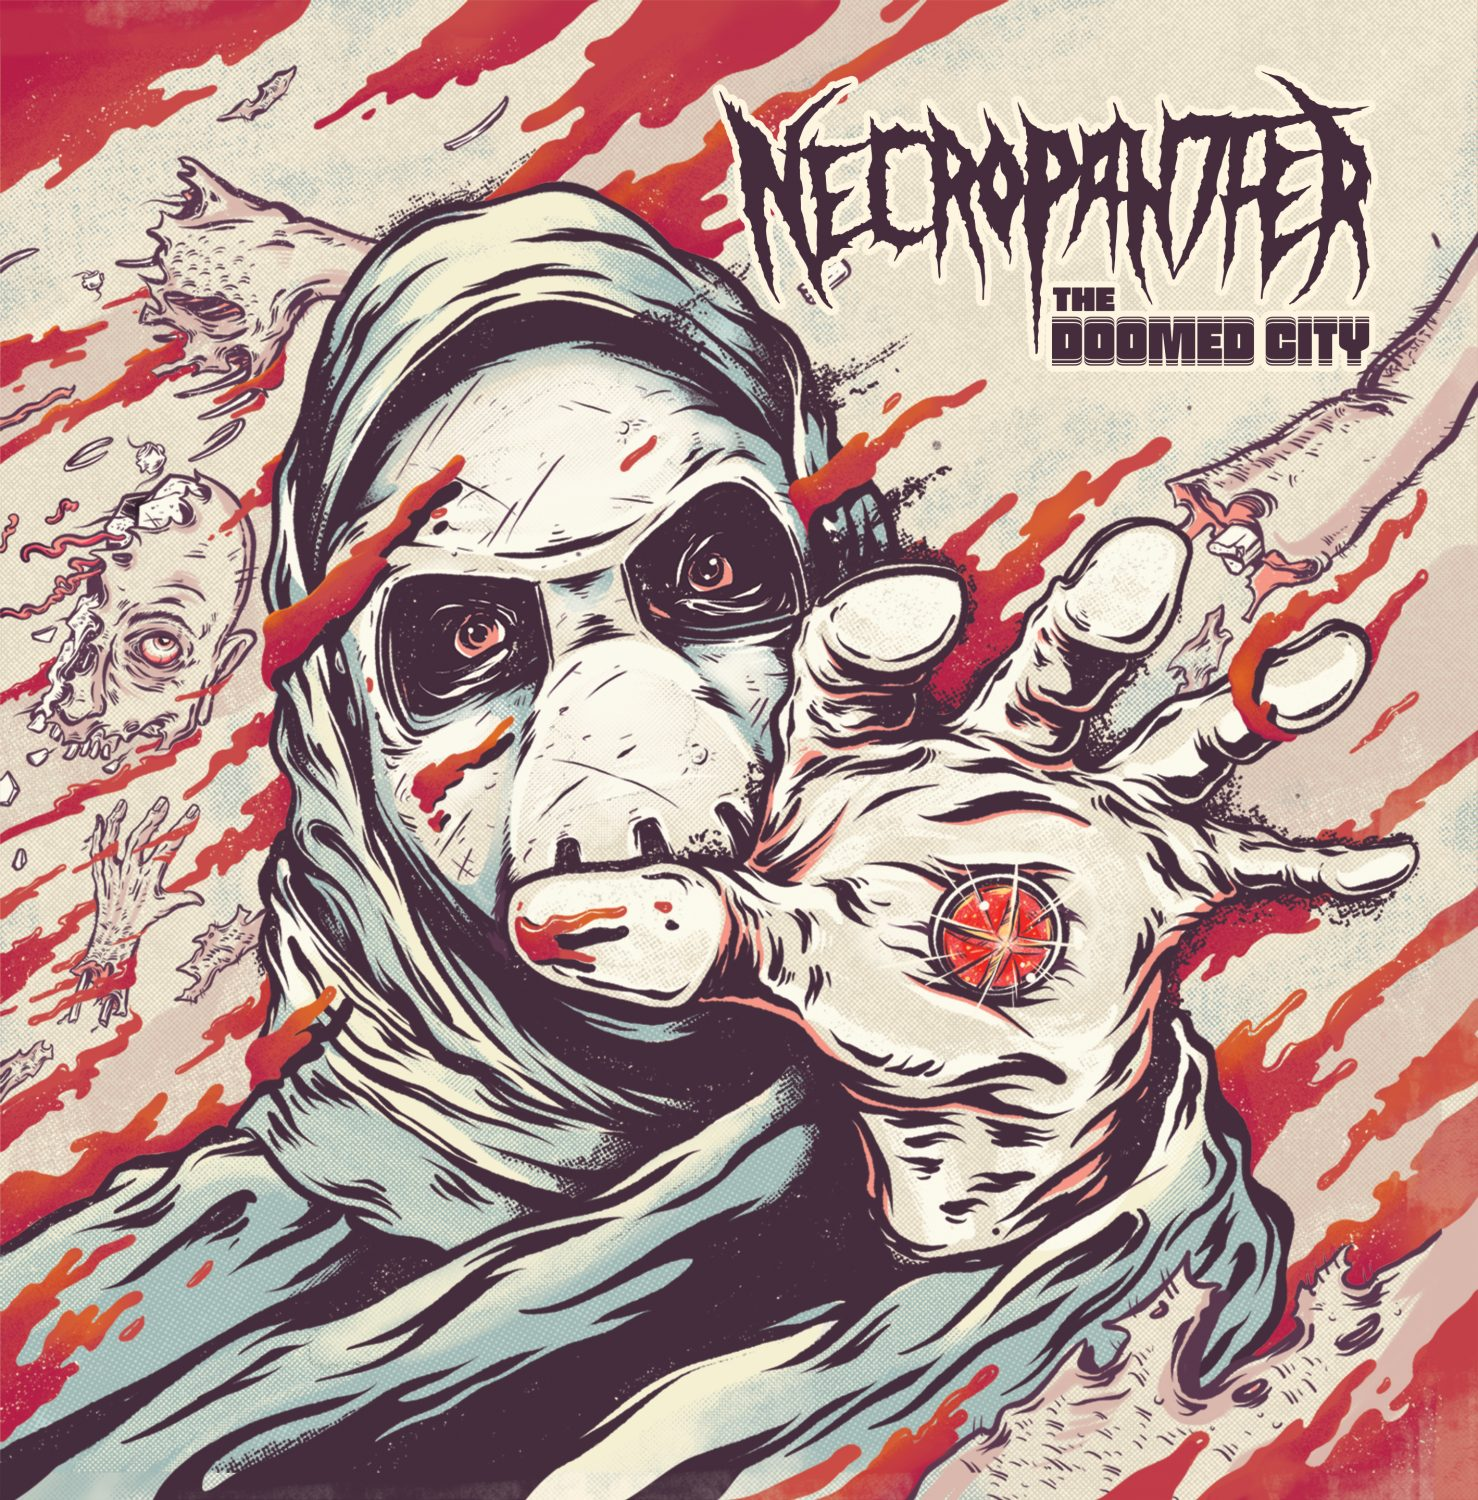 Necropanther - The Doomed City Review | Angry Metal Guy